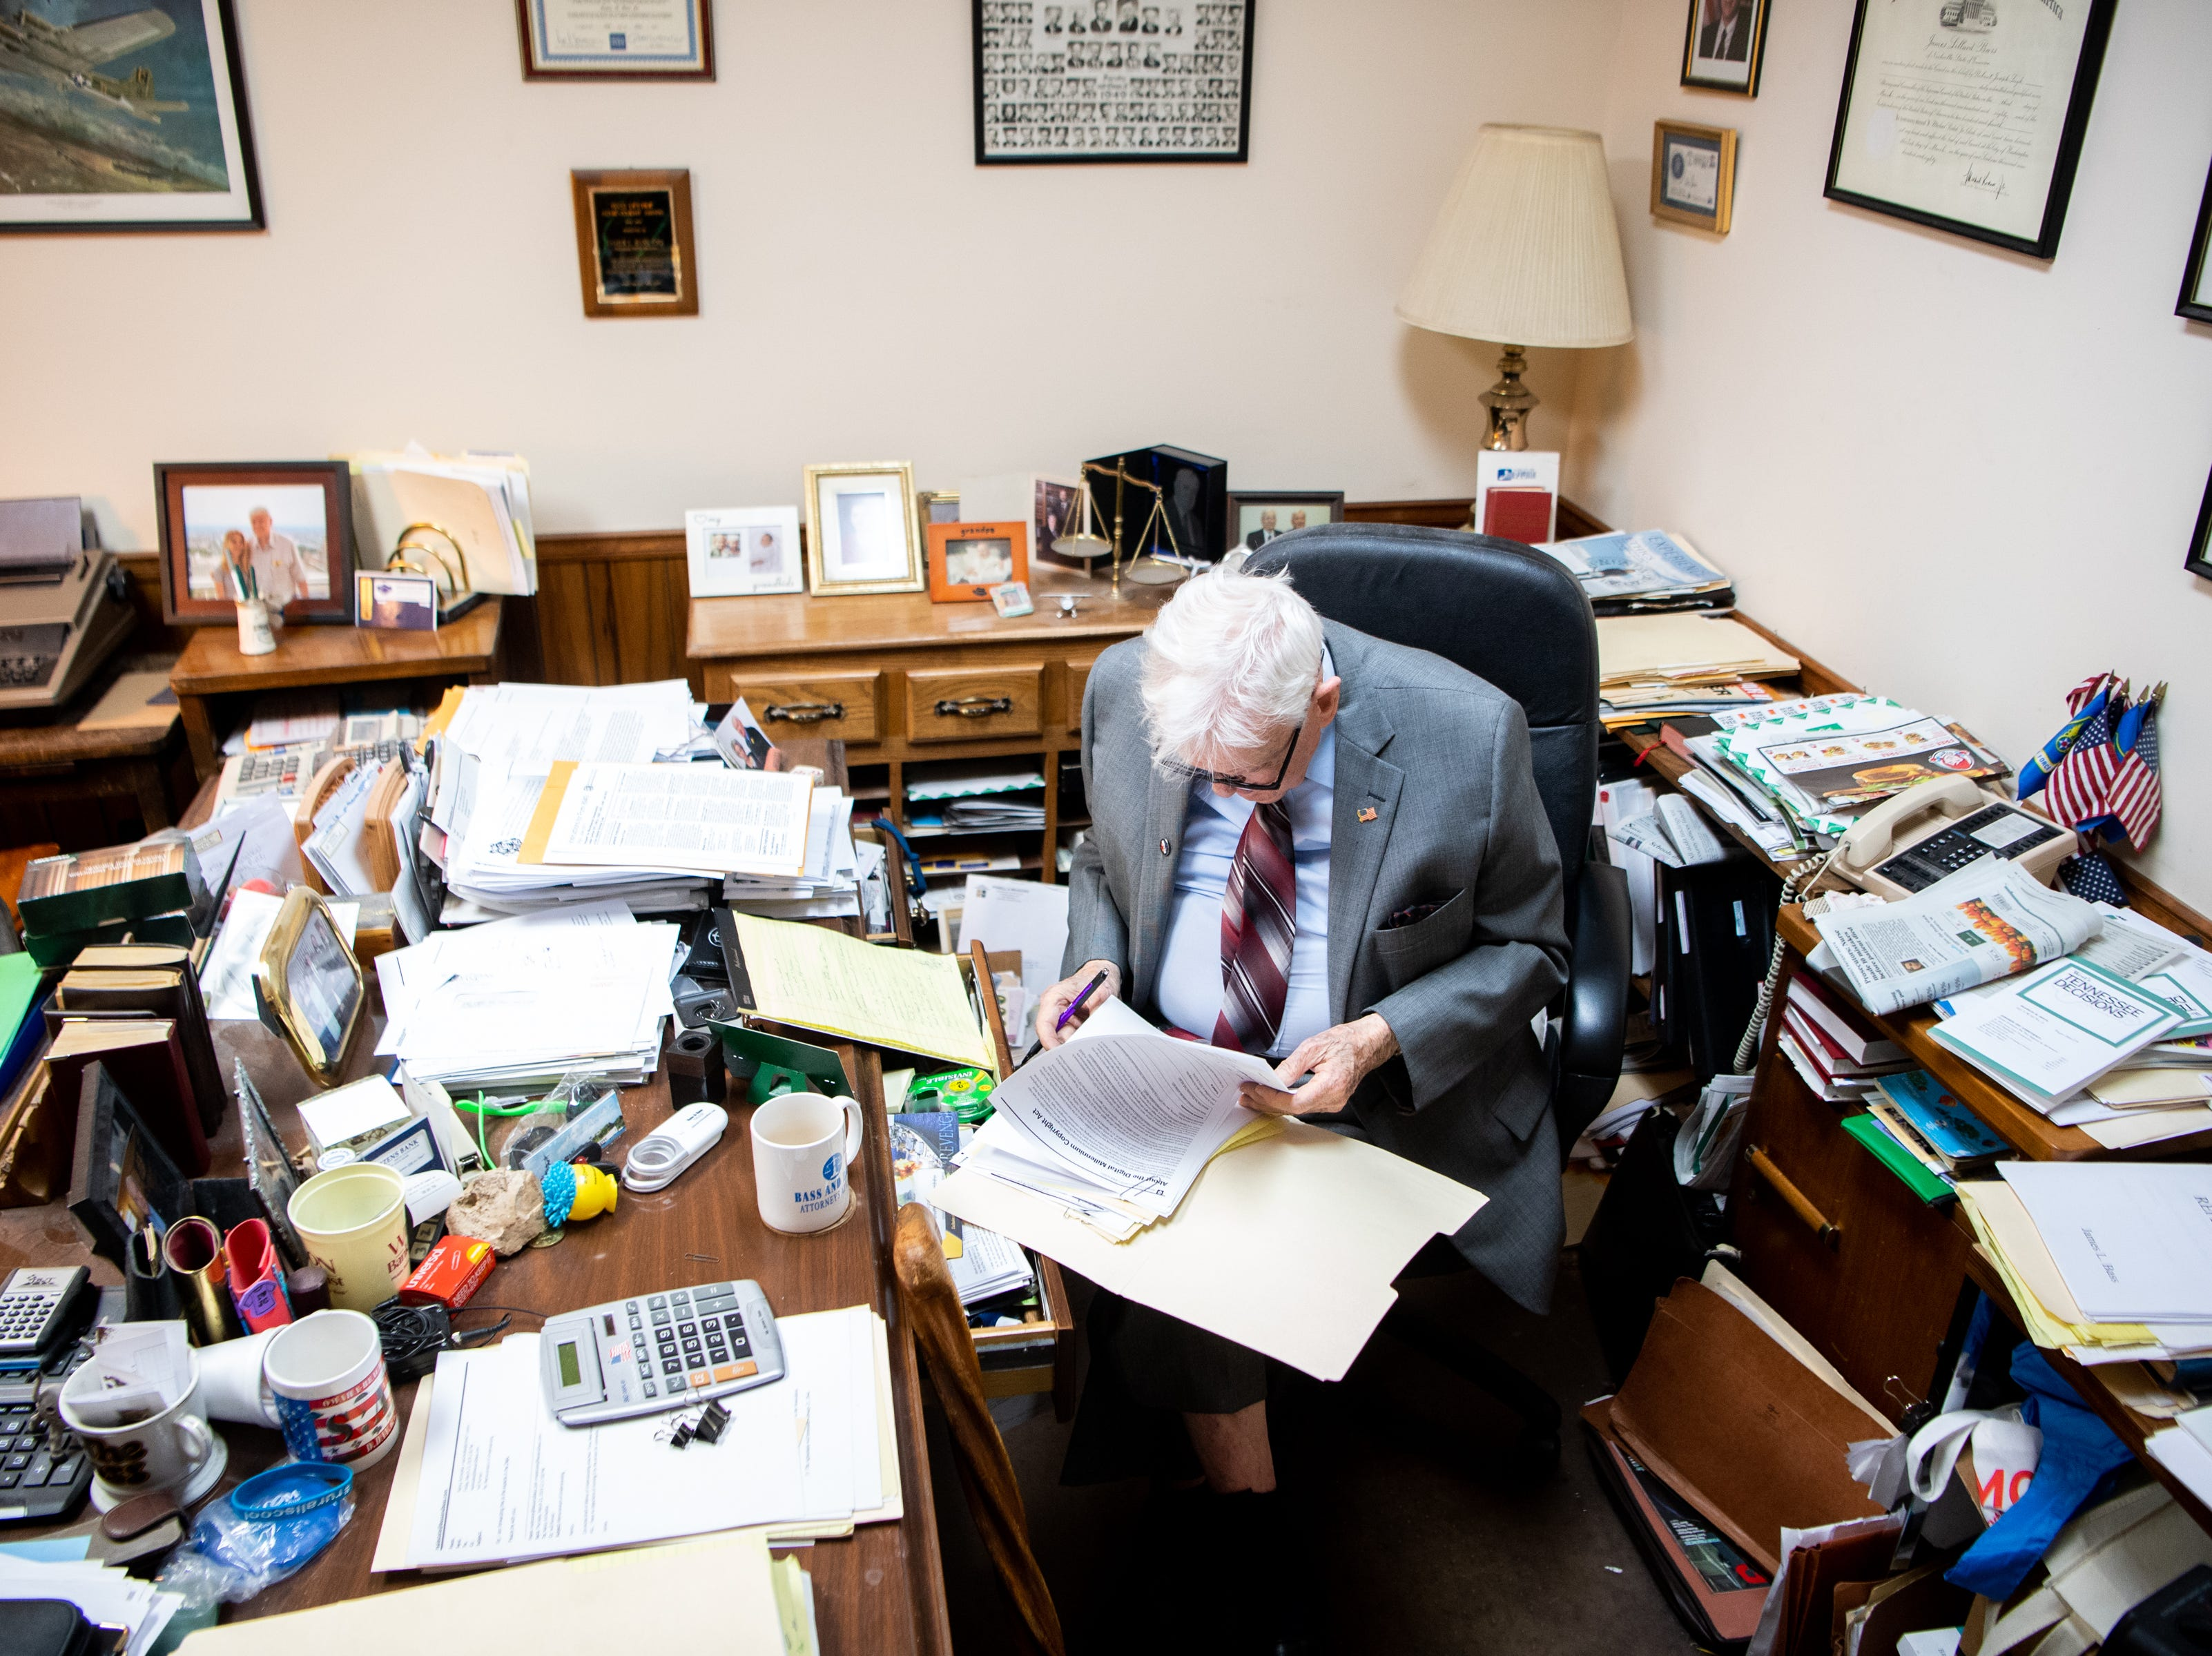 James L. Bass, 97, studies the Digital Millennium Copyright Act at Bass & Bass Attorneys At Law Friday, March 29, 2019, in Carthage, Tenn. Bass still works five days a week at the family law firm after starting there 70 years ago. Bass served in World War II, went back to school to pursue a law degree and graduated Vanderbilt University School of Law in 1949.